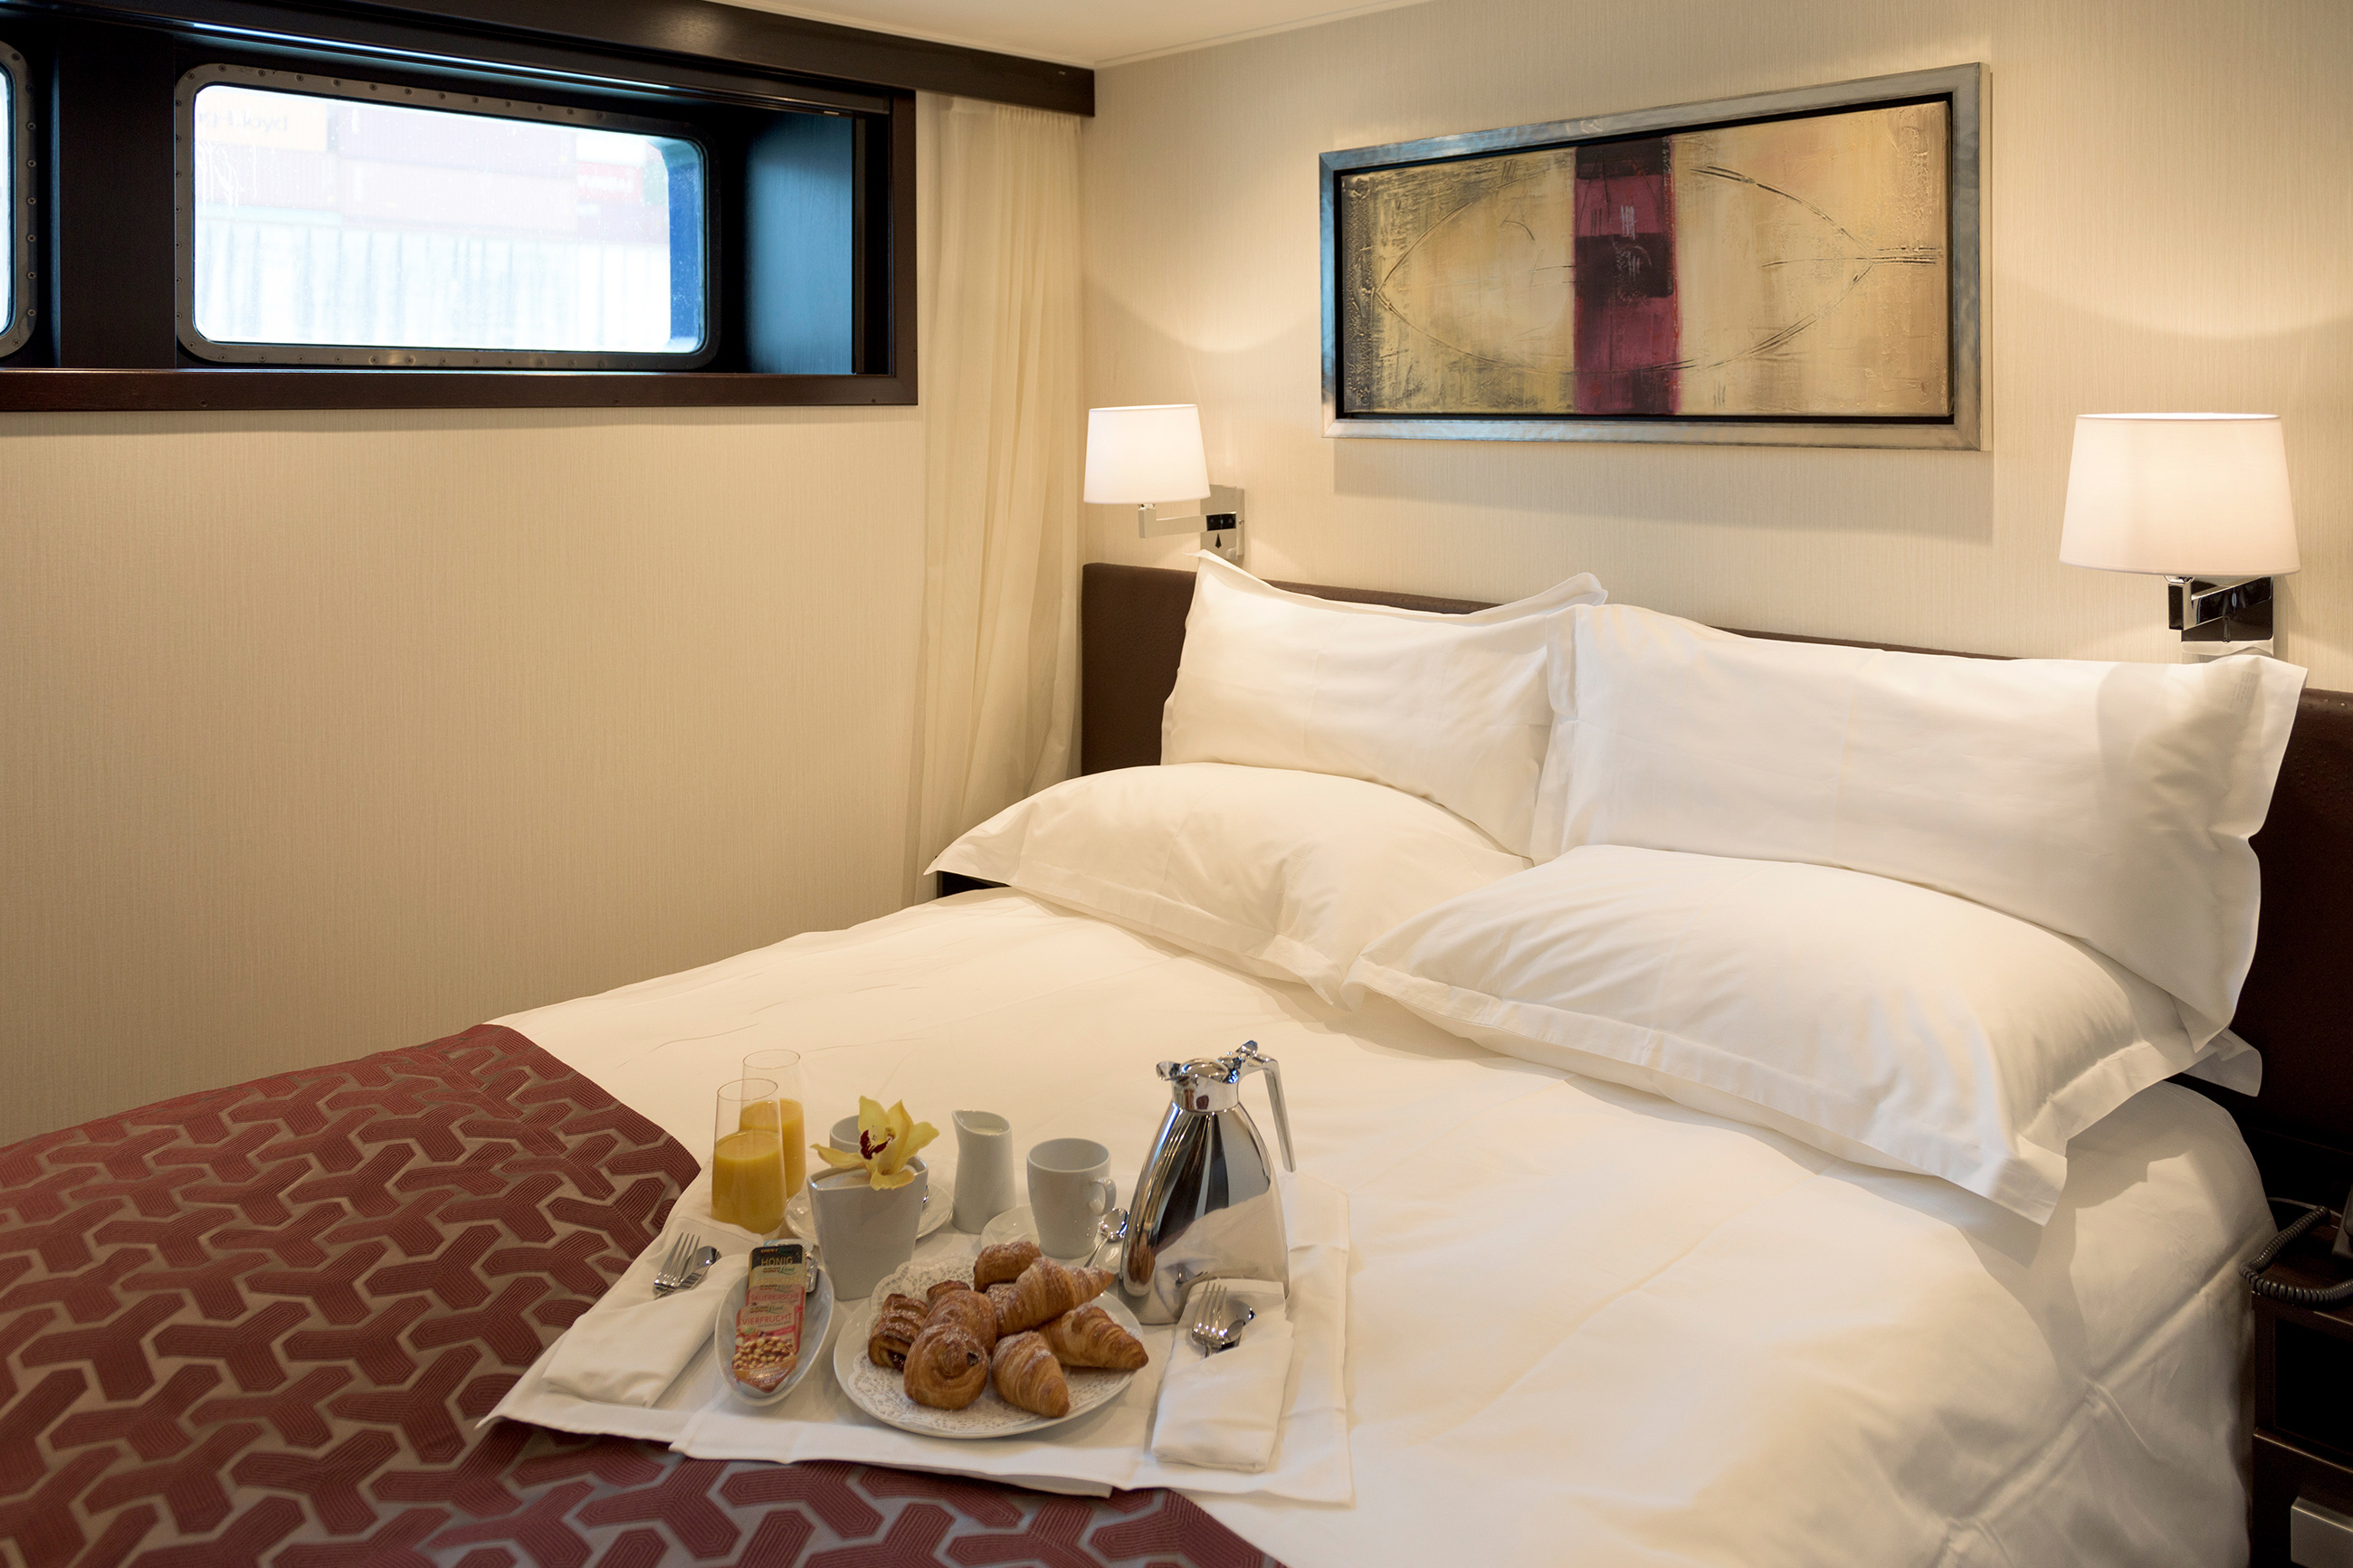 PASSION_deluxe_stateroom-1.jpg